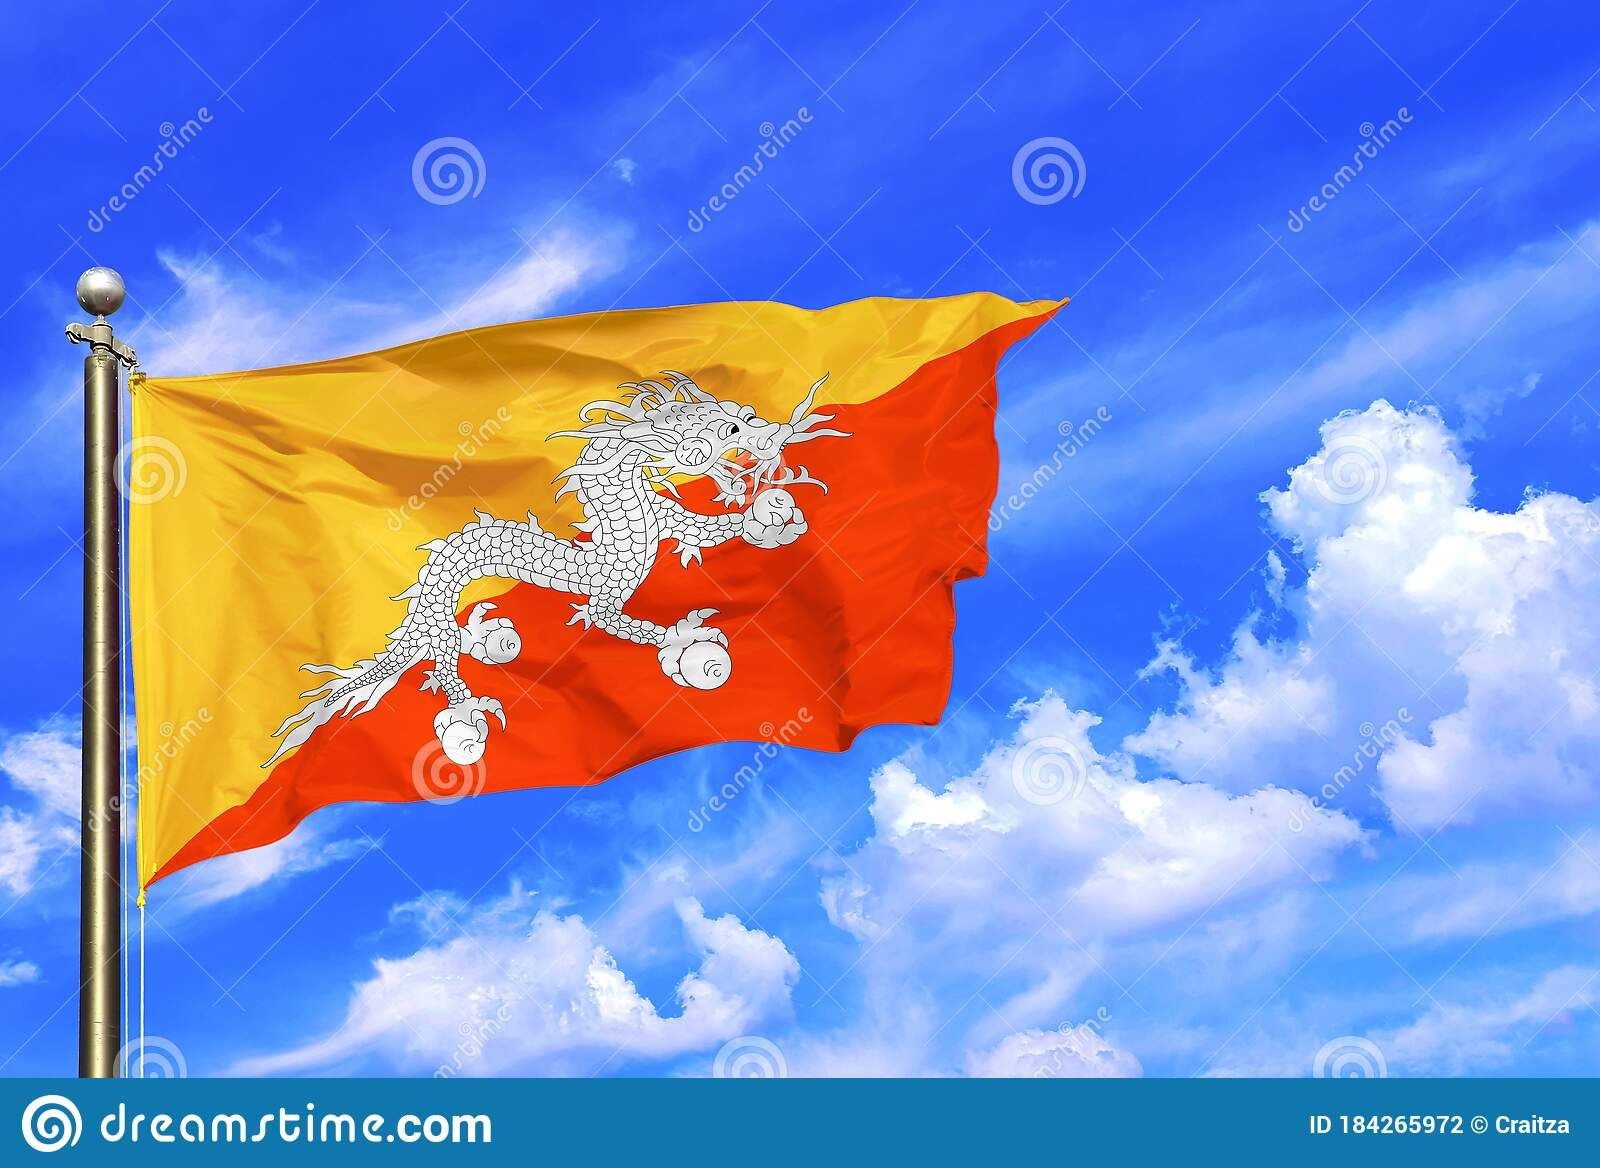 Bhutan Yellow Orange White Dragon National Flag Waving In The Wind On A Beautiful Summer Blue Sky In 2020 Summer Blue Bhutan Flag White Dragon